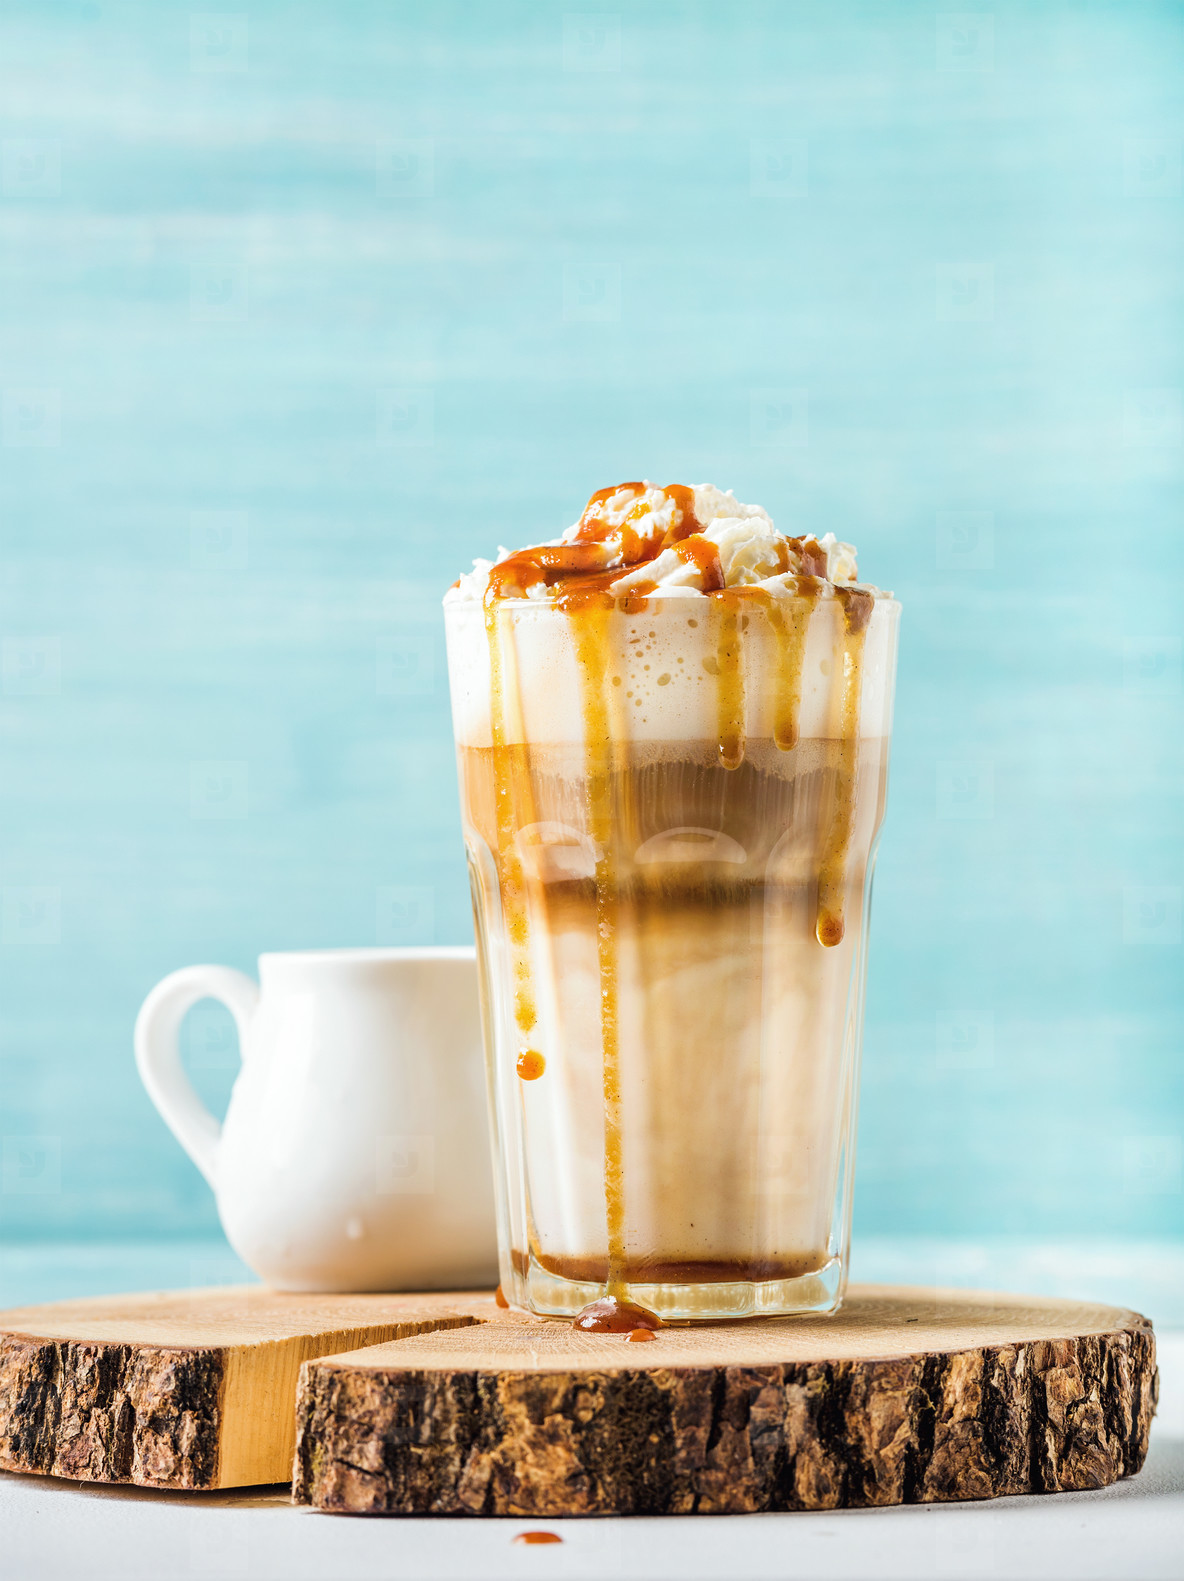 Macchiato Caramel Latte Macchiato With Whipped Cream And Caramel Sauce In Tall Glass On Round Wooden Serving Board Over Blue Painted Wall Background